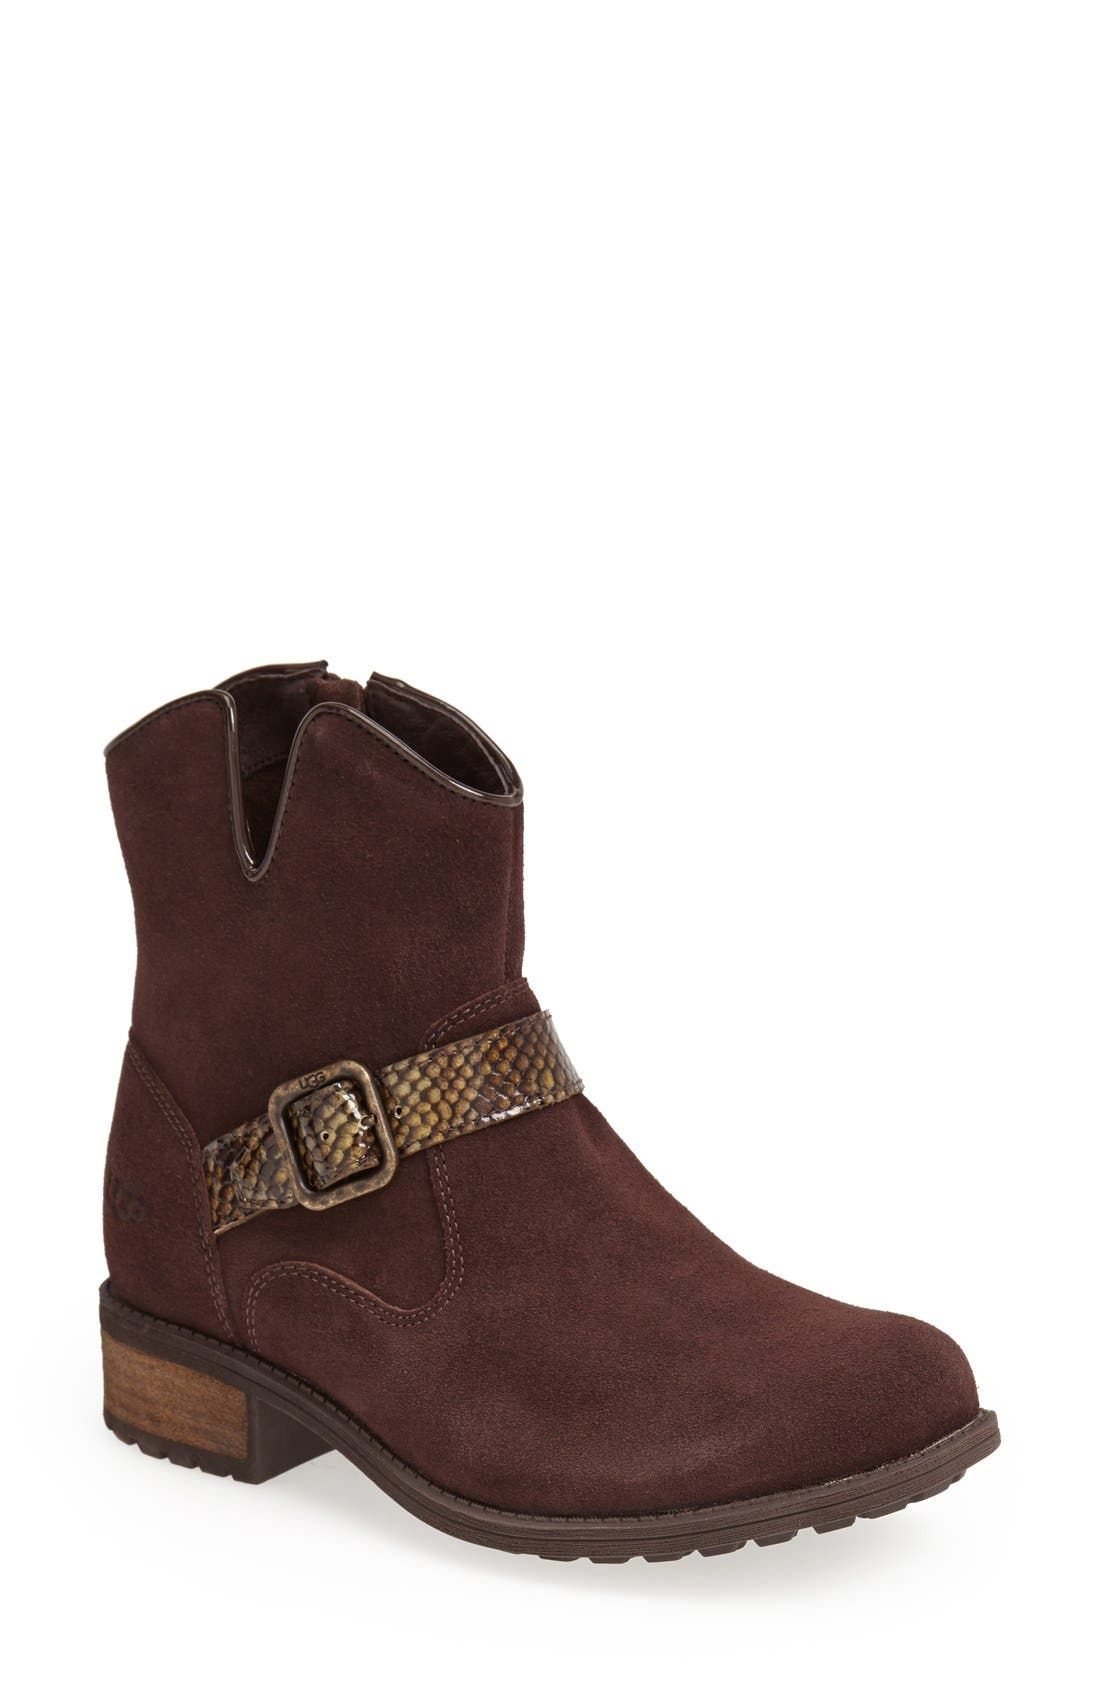 Main Image - UGG® Australia 'Milnor' Belted Boot (Women)